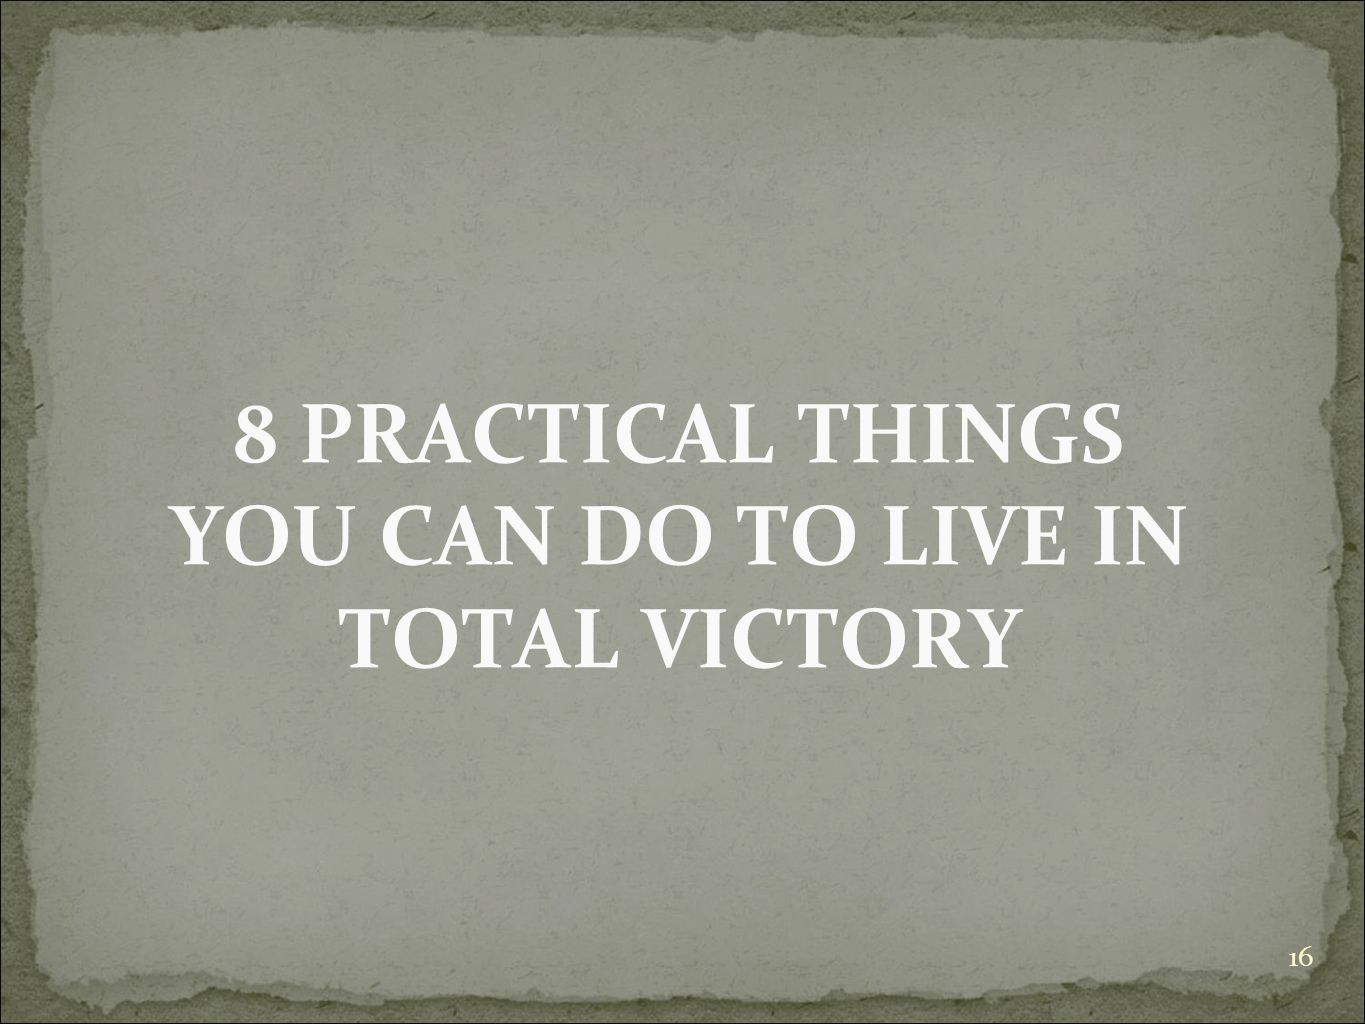 8 PRACTICAL THINGS YOU CAN DO TO LIVE IN TOTAL VICTORY